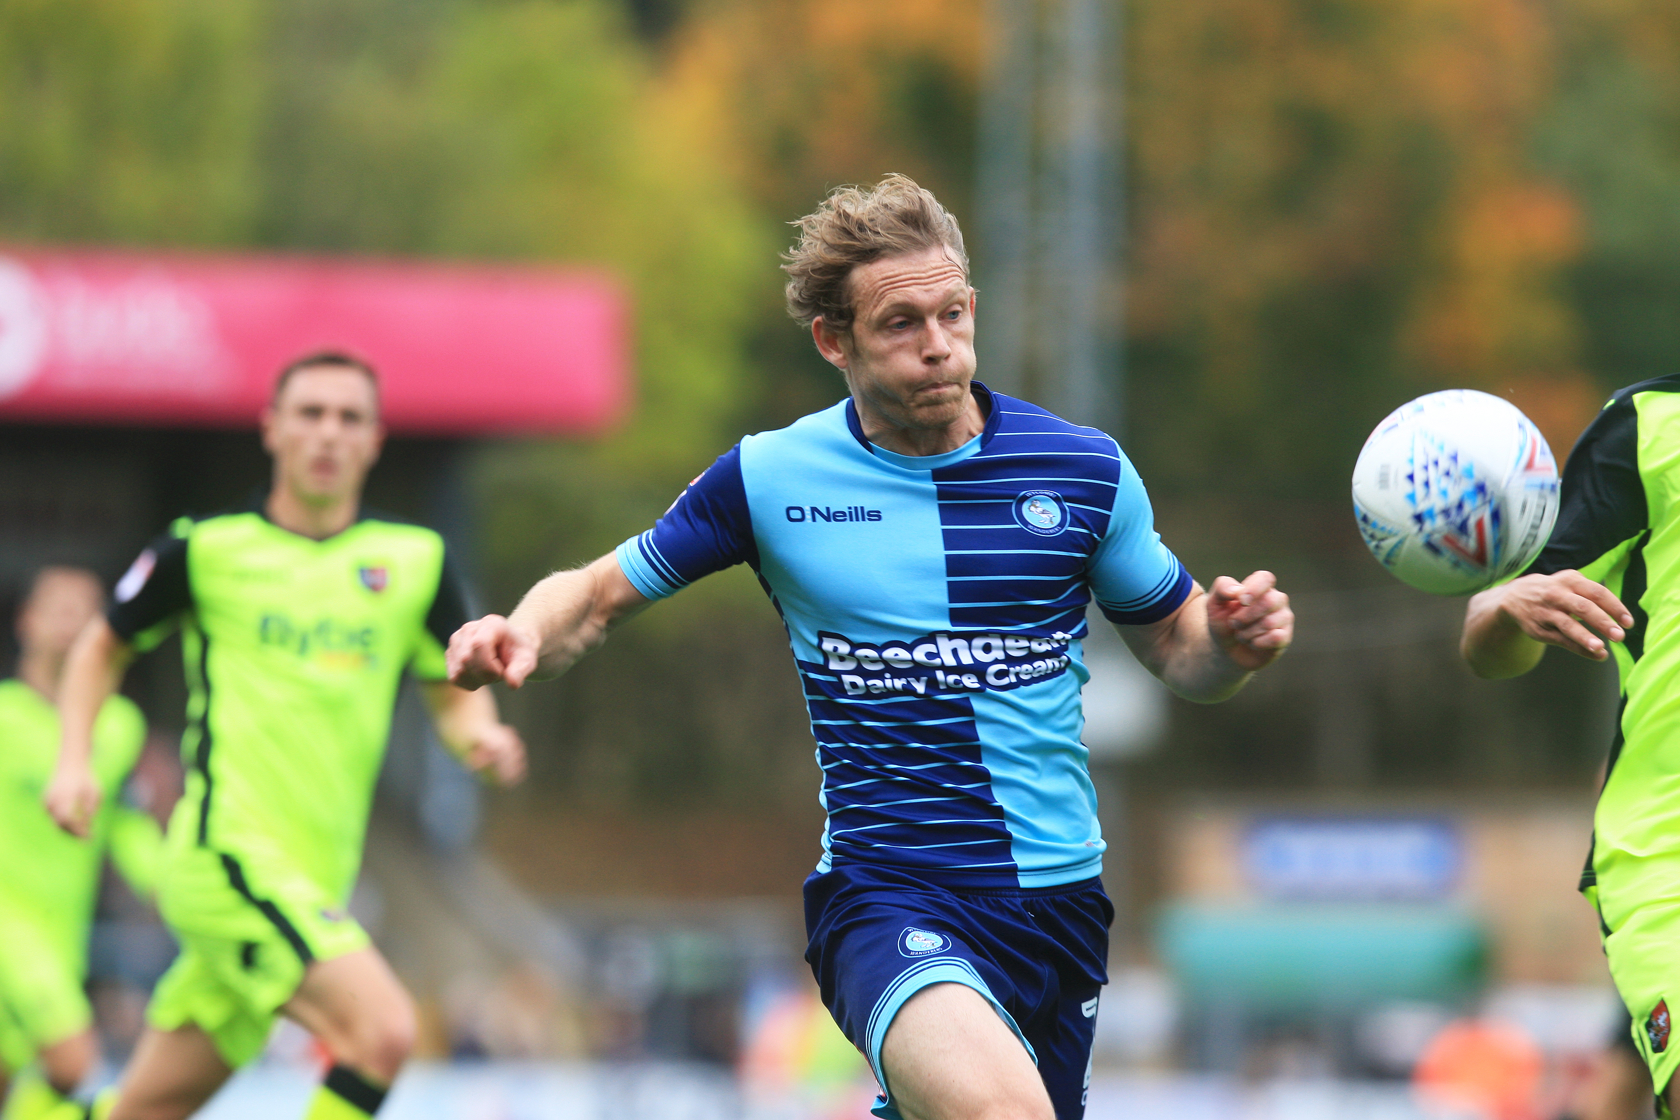 Mackail-Smith was in excellent form against Solihull Moors